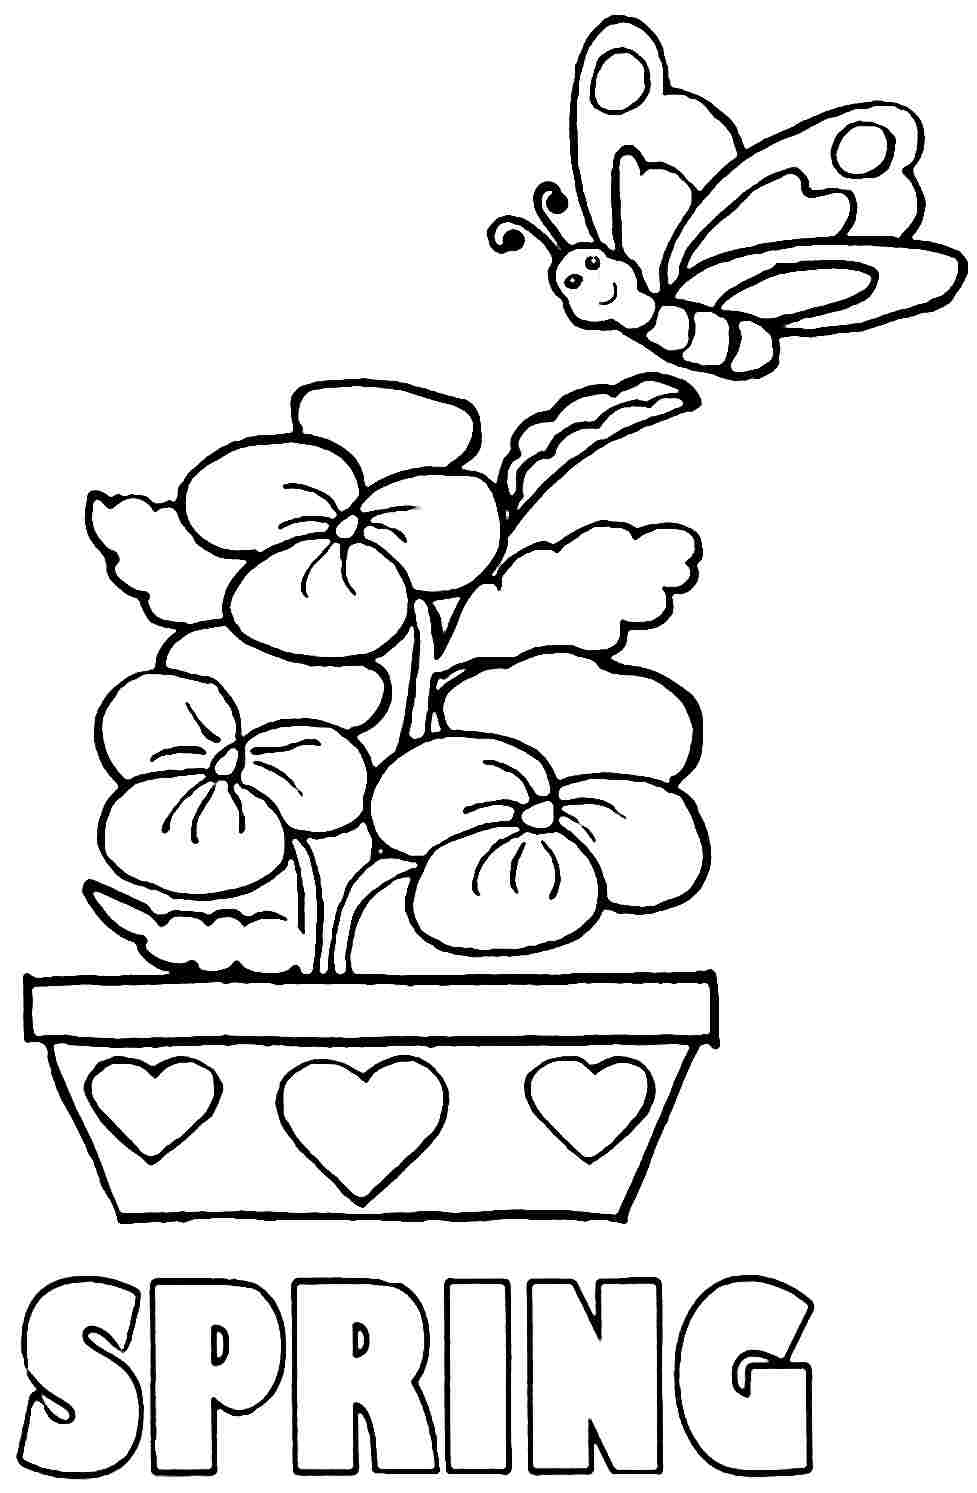 spring coloring pages detailed words - photo#9